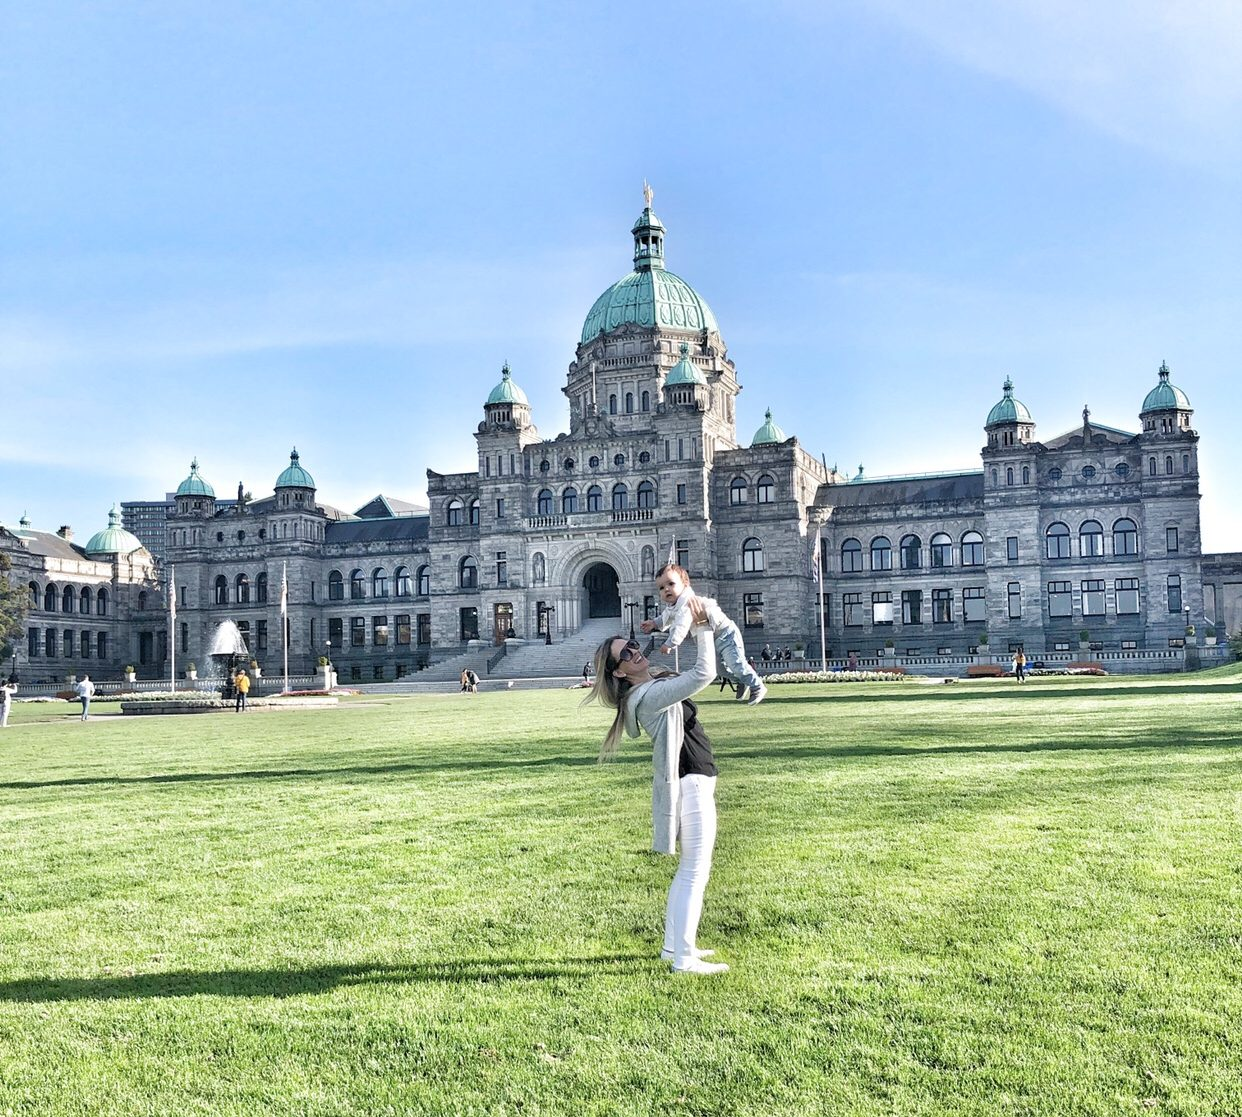 A few days in Victoria!